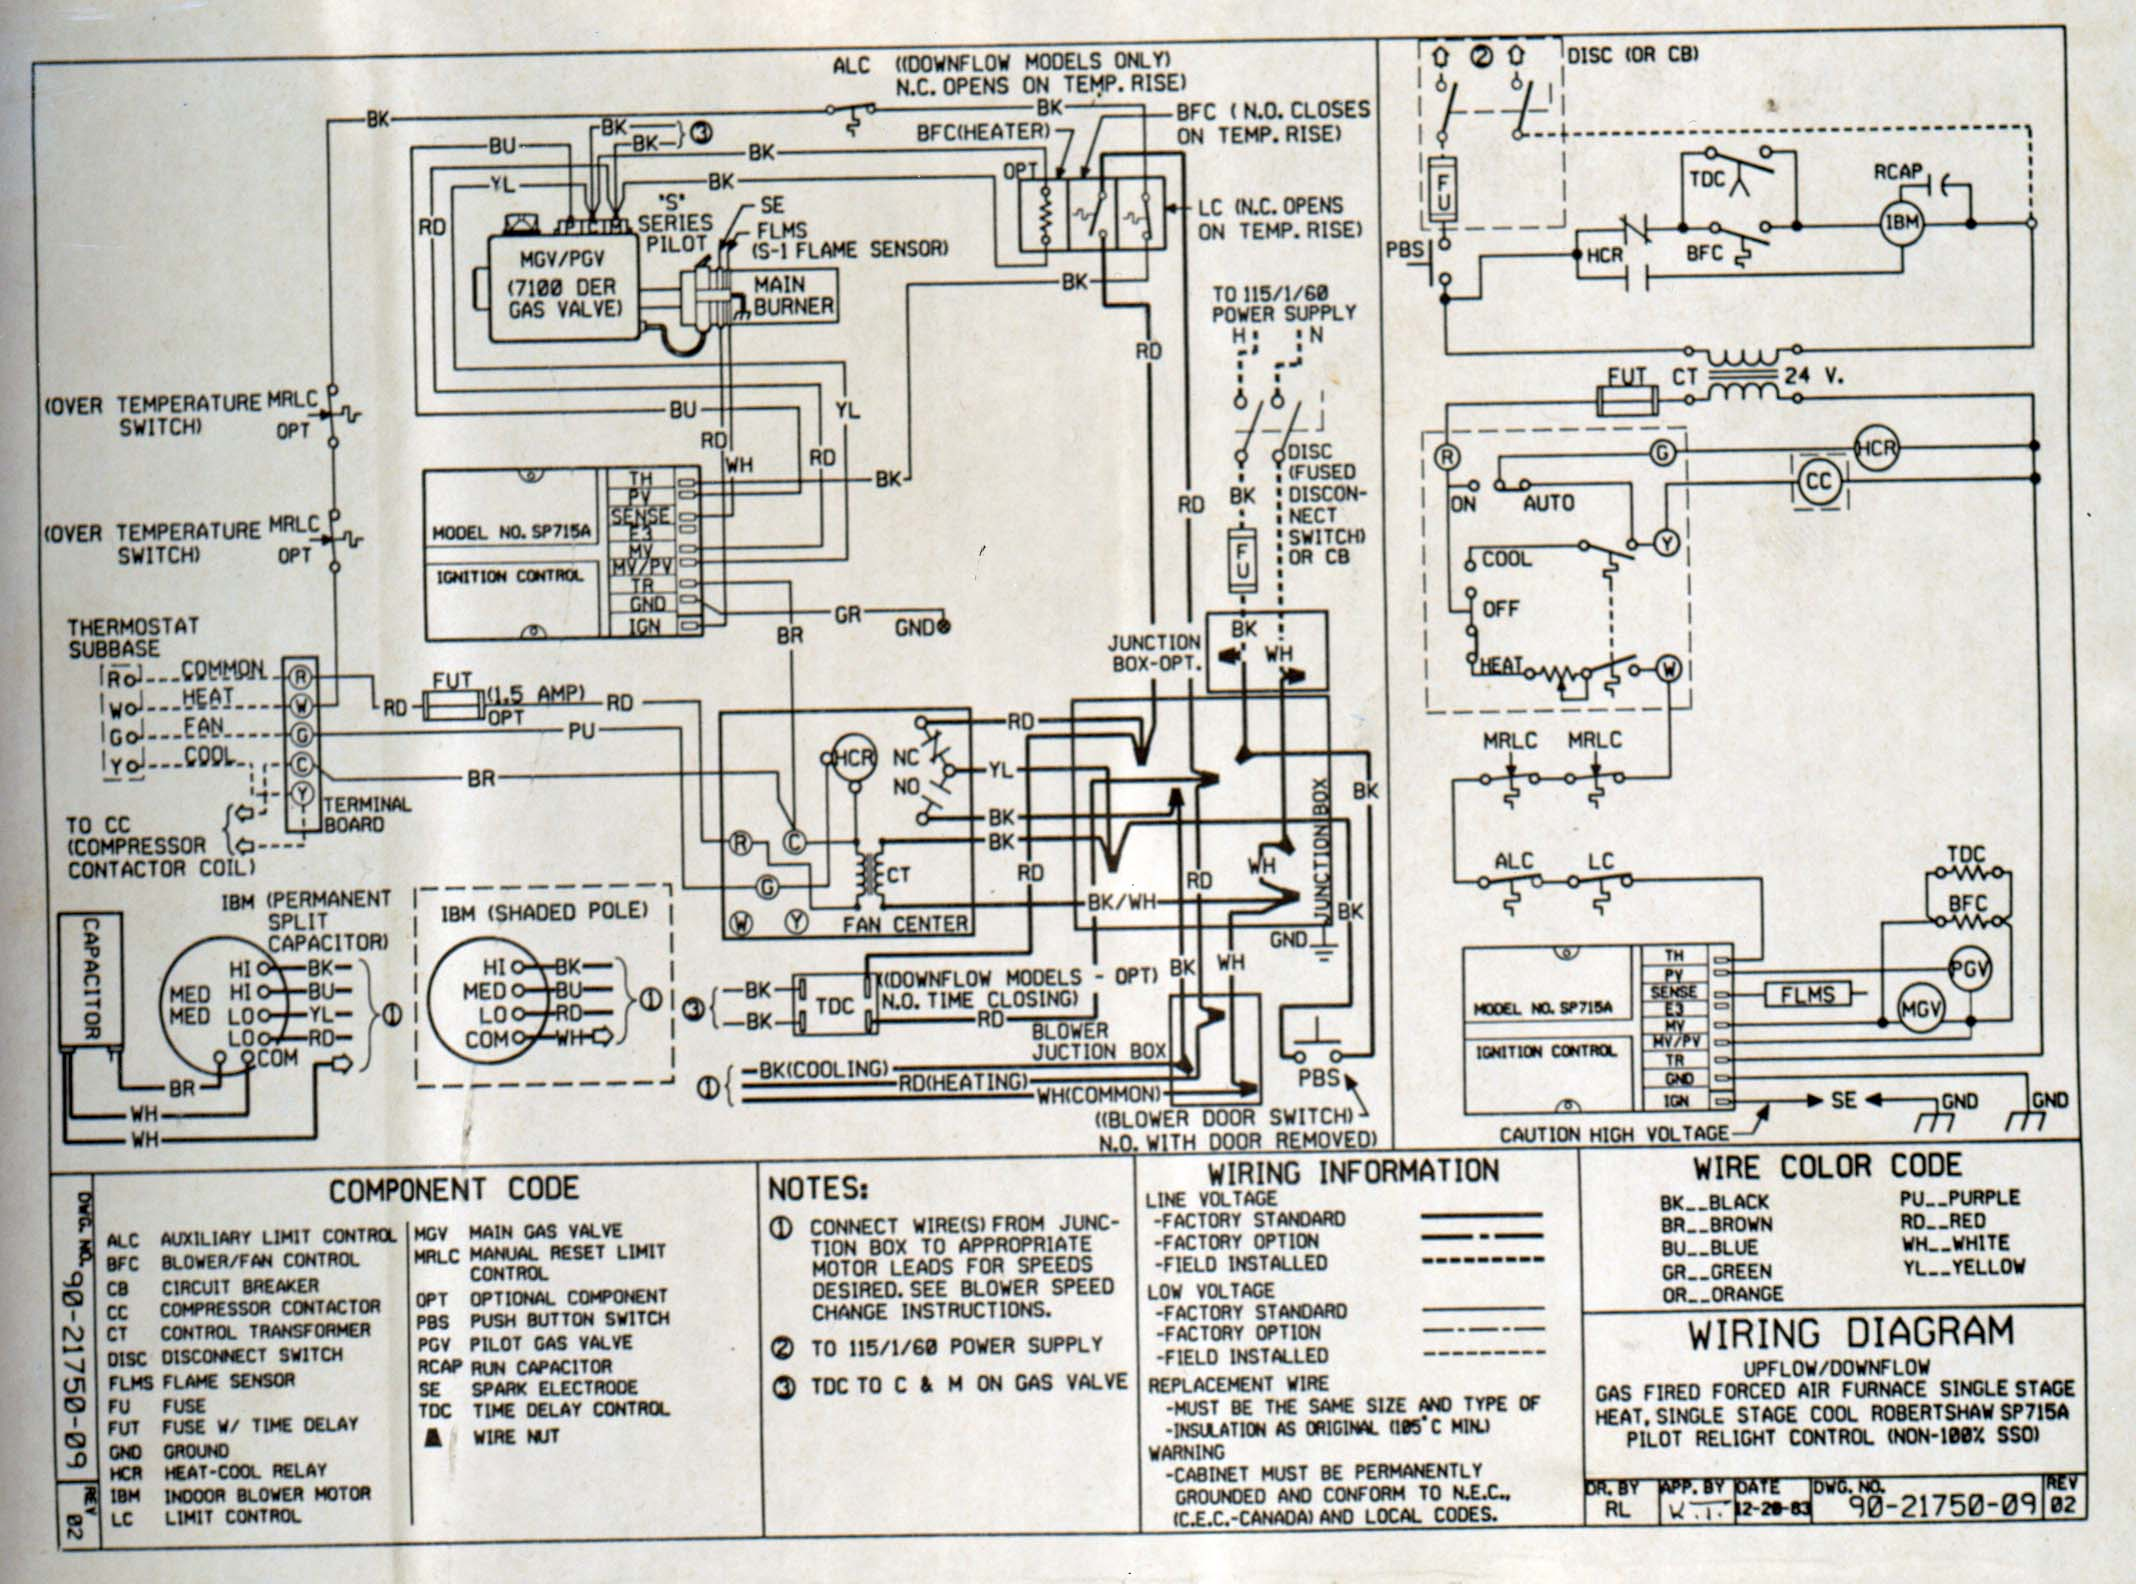 old wood furnace wiring diagram furnace fan won't stop running after the heating cycle is done old icp furnace wiring diagram